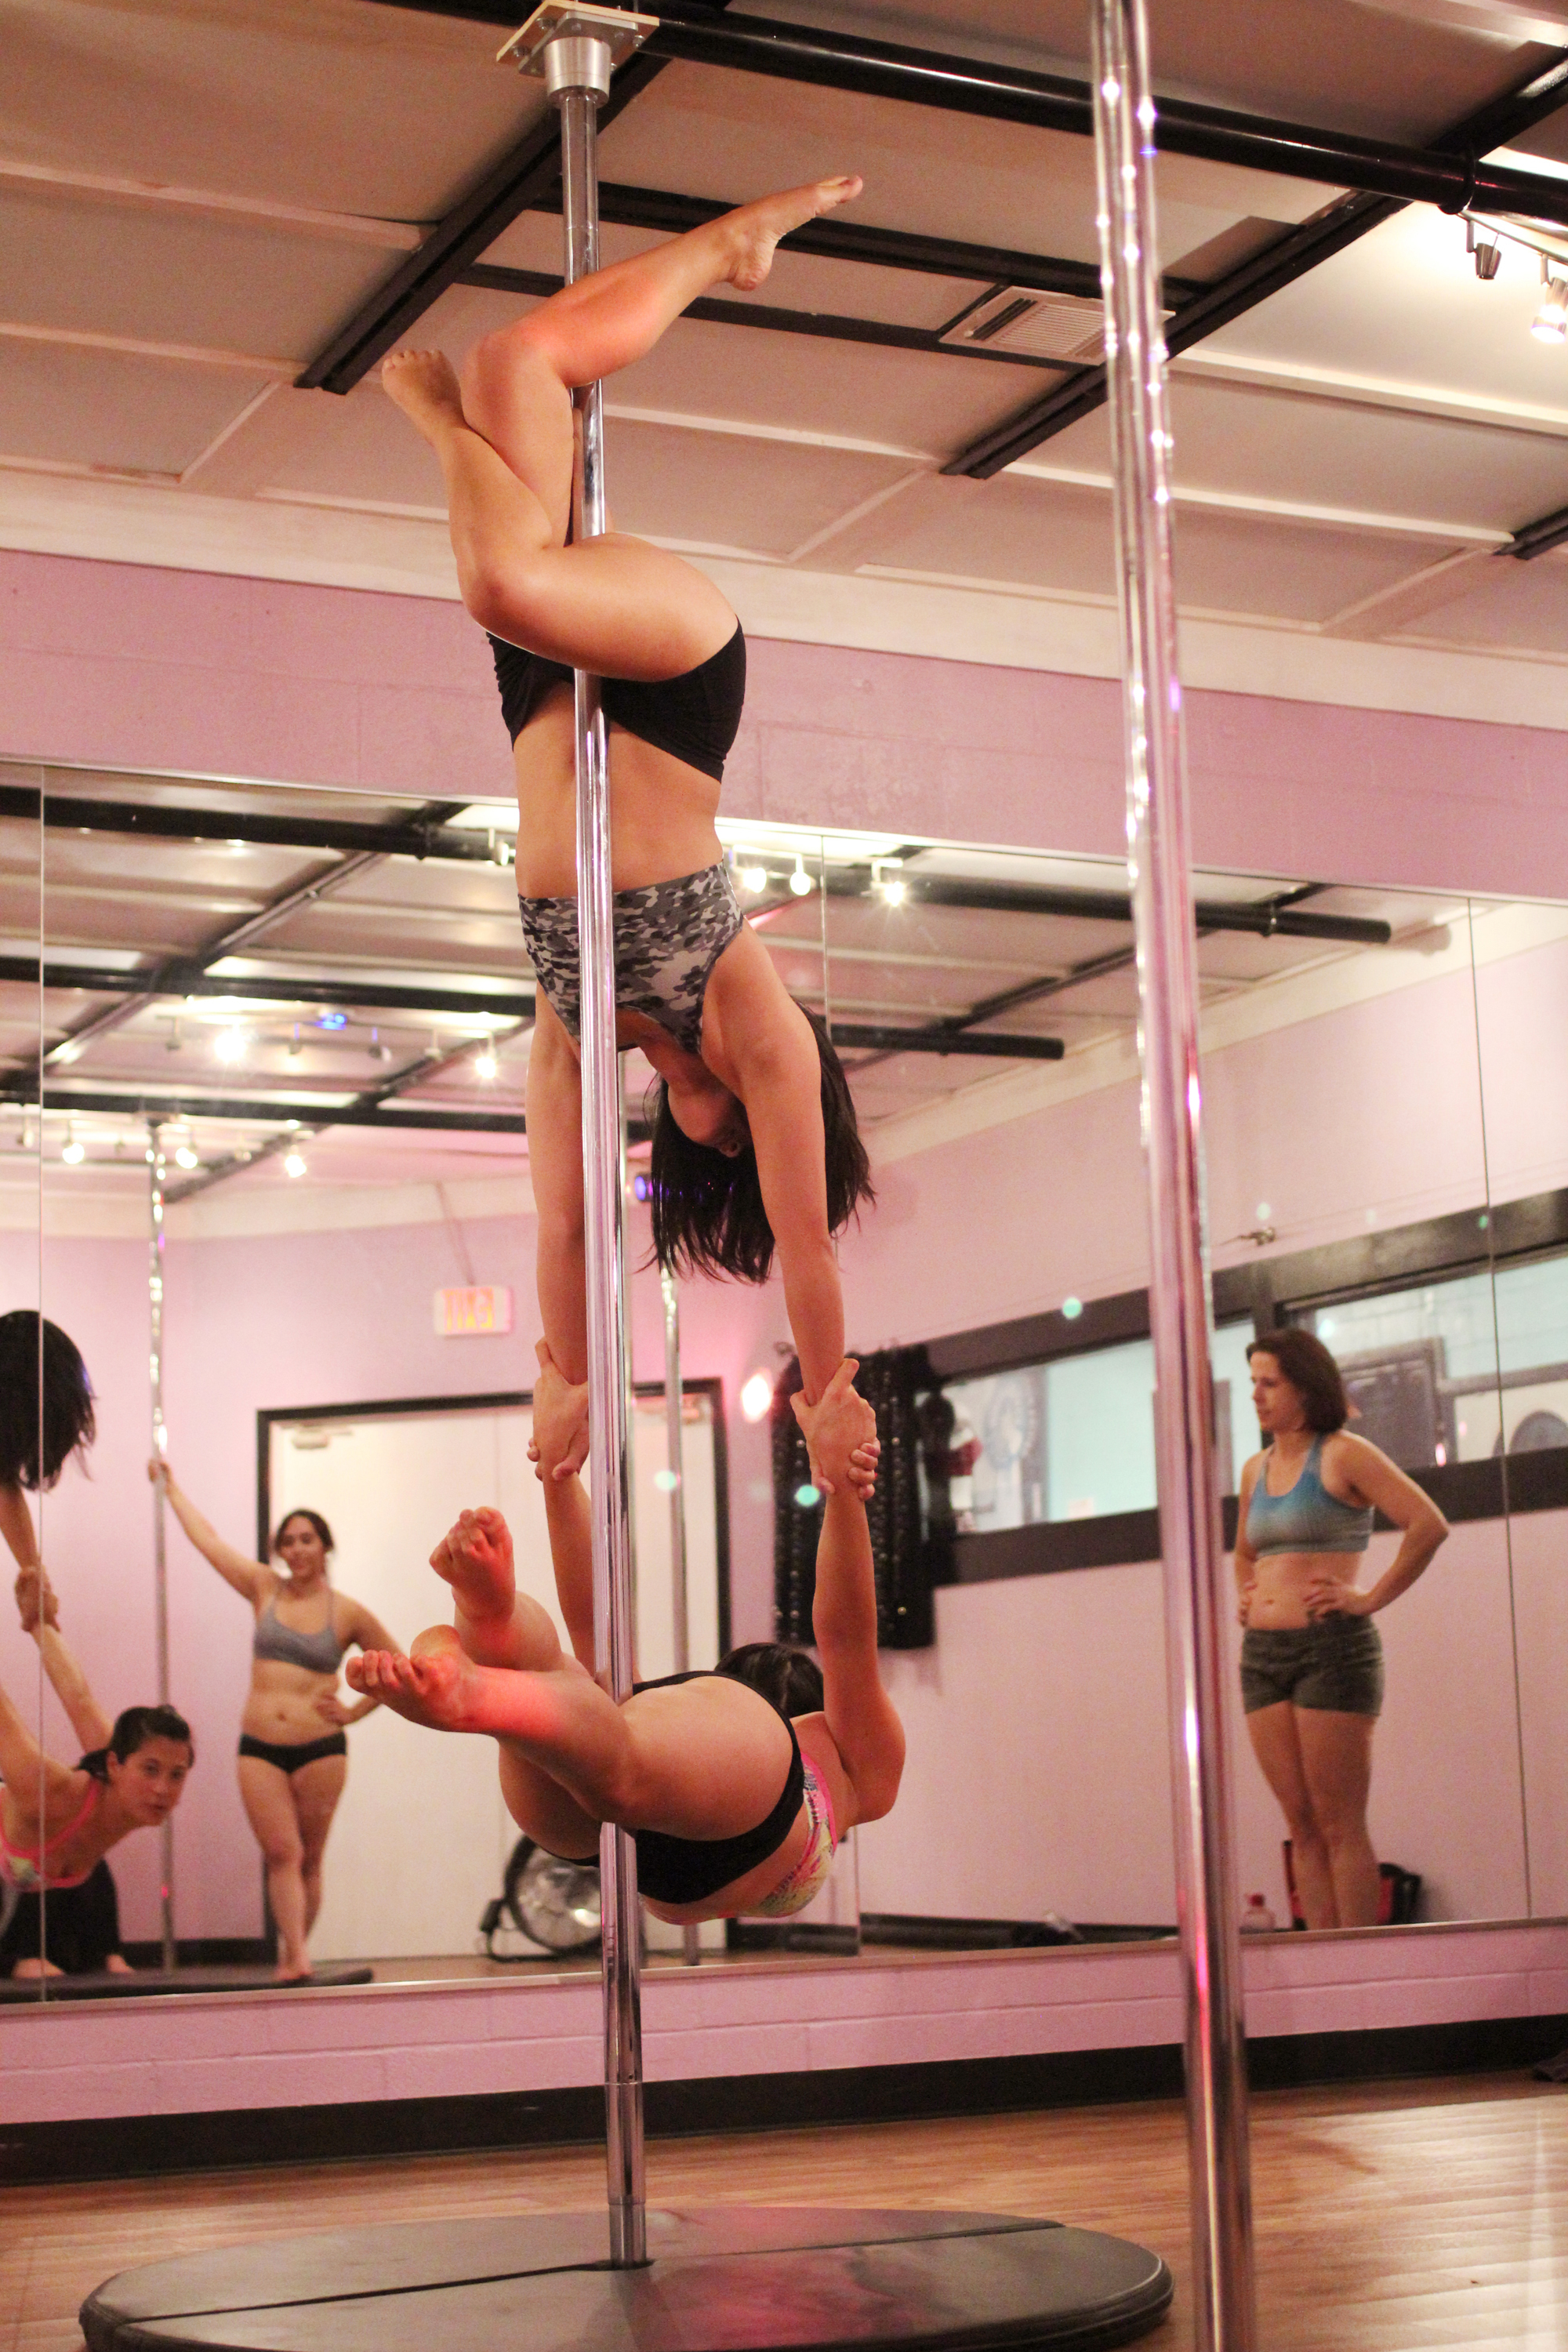 A Two Person Pole Move Is An Advanced Skill That Requires Dancers To Have Lots Of